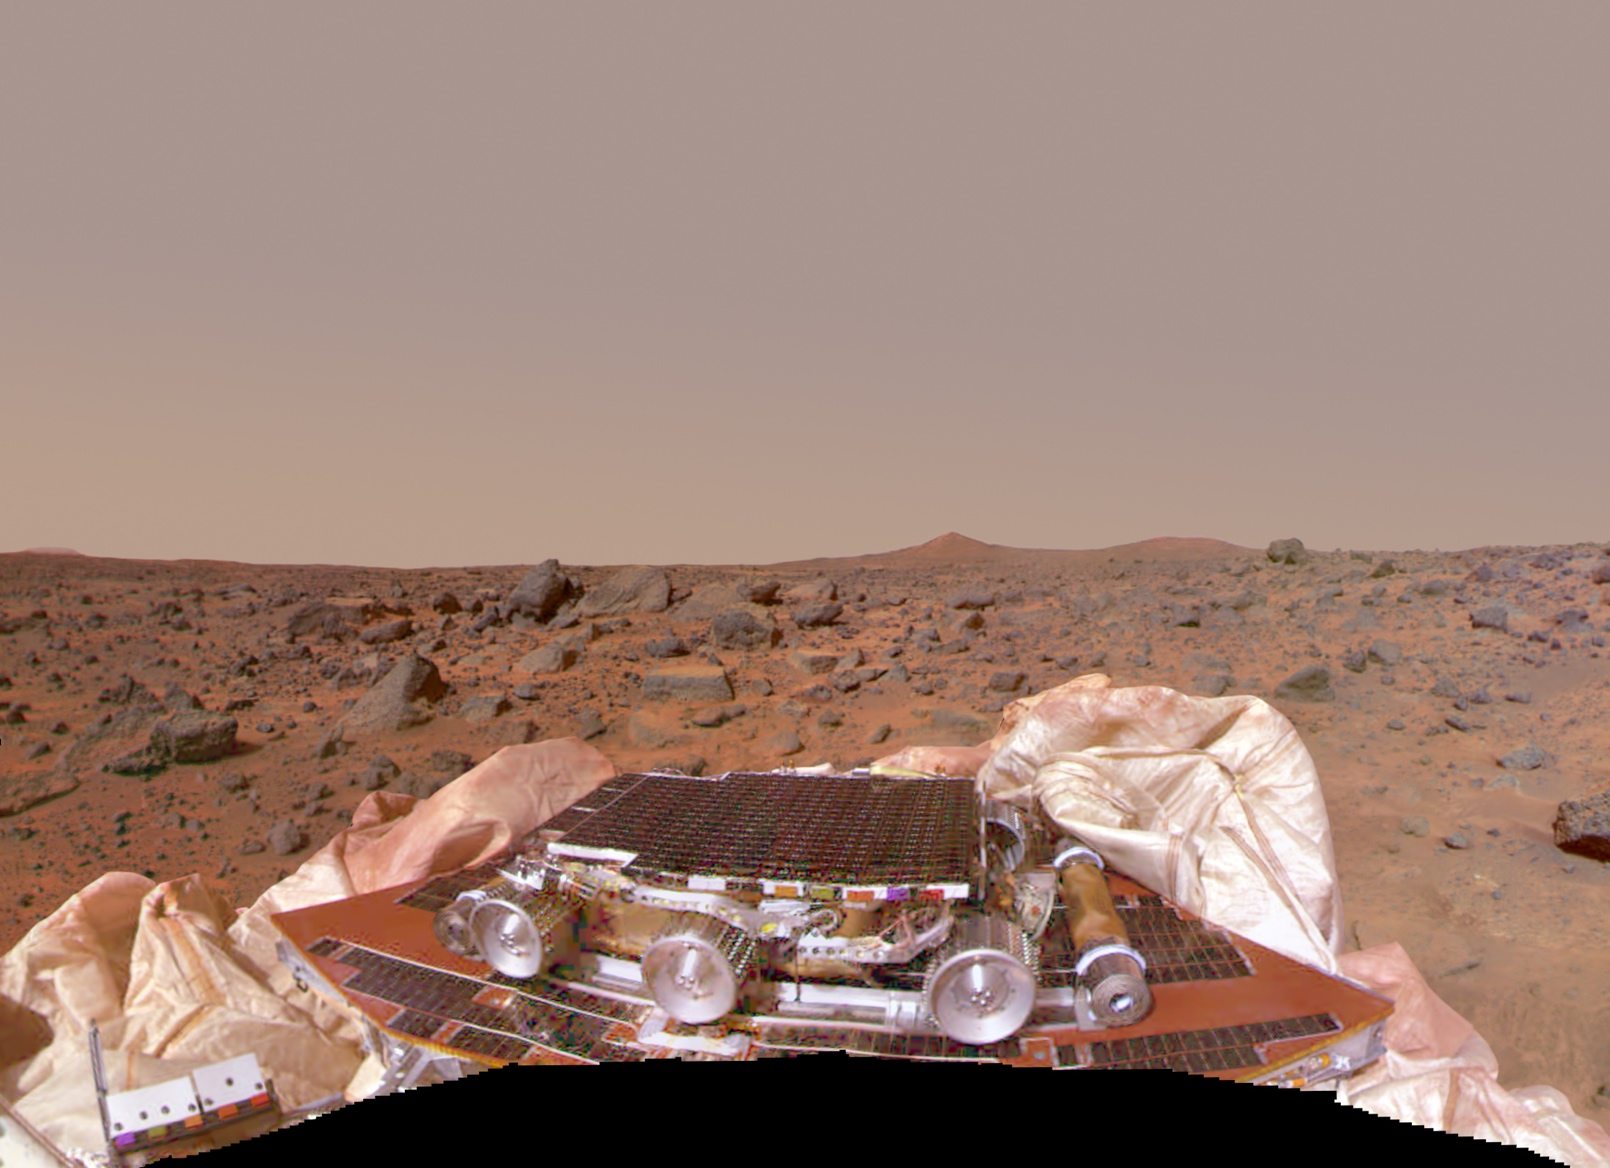 Mars Pathfinder shortly after landing on Mars.